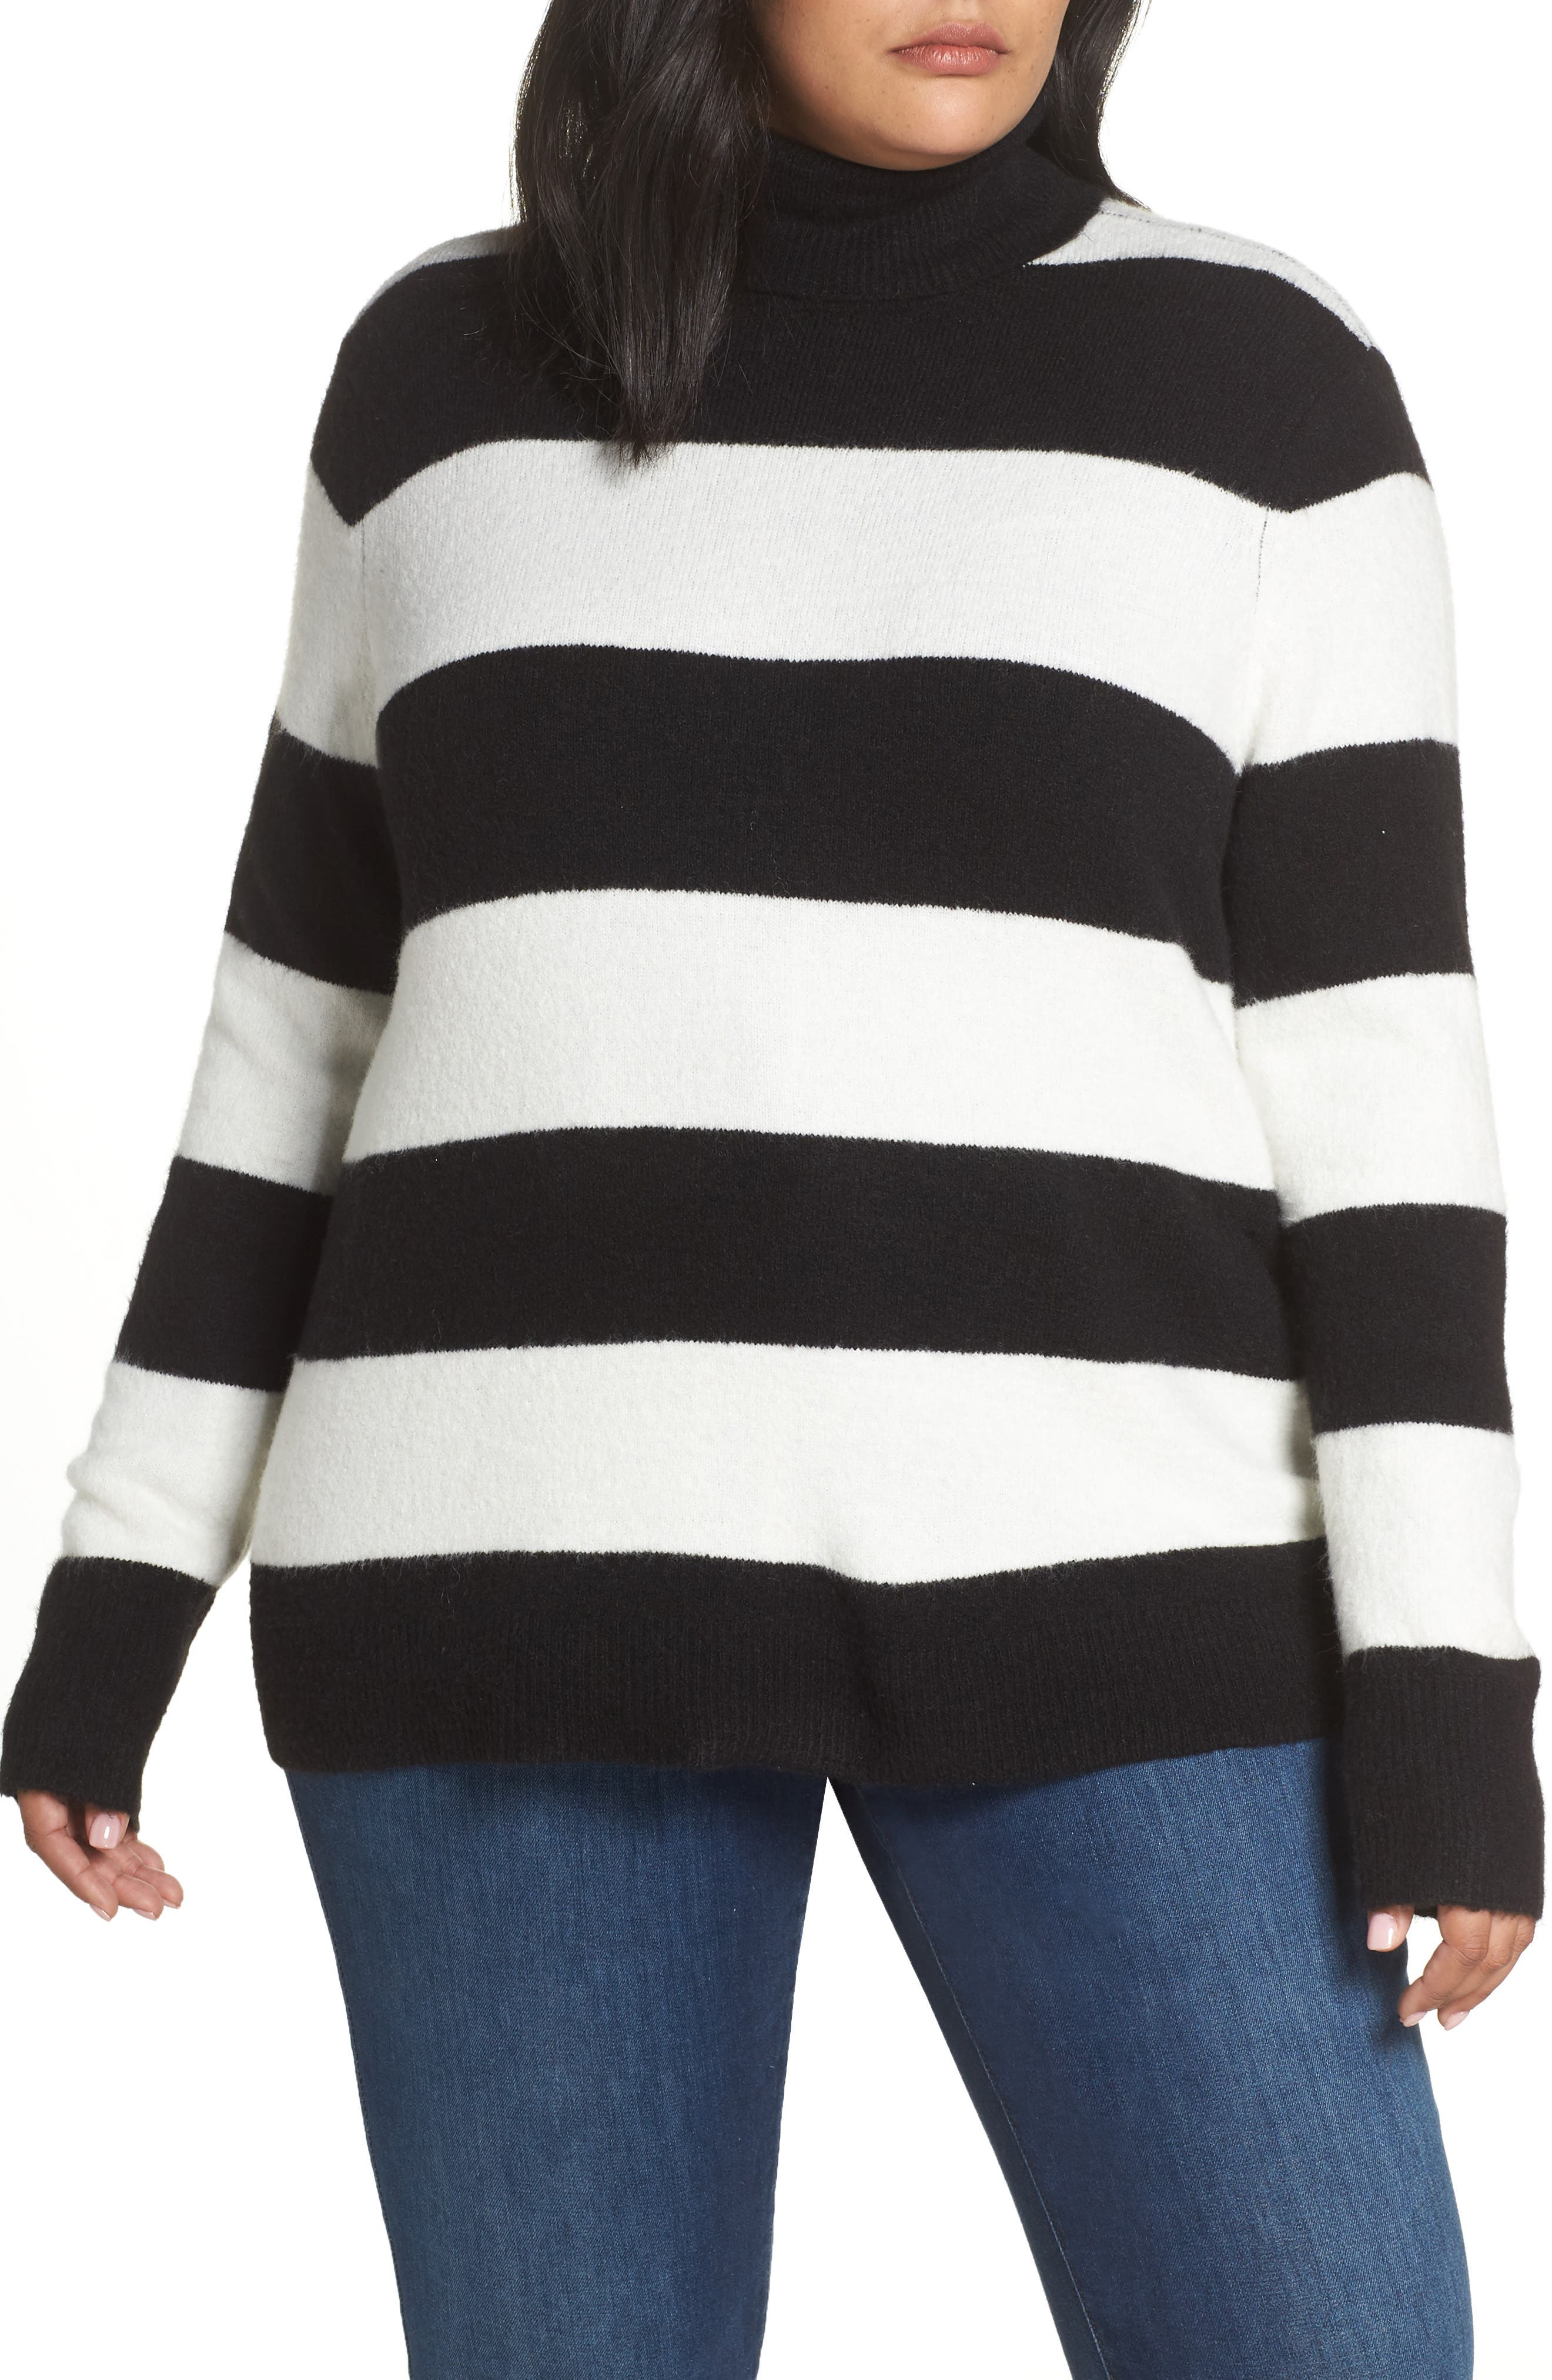 x Atlantic-Pacific Stripe Turtleneck Sweater,                             Main thumbnail 1, color,                             BLACK- IVORY STRIPE